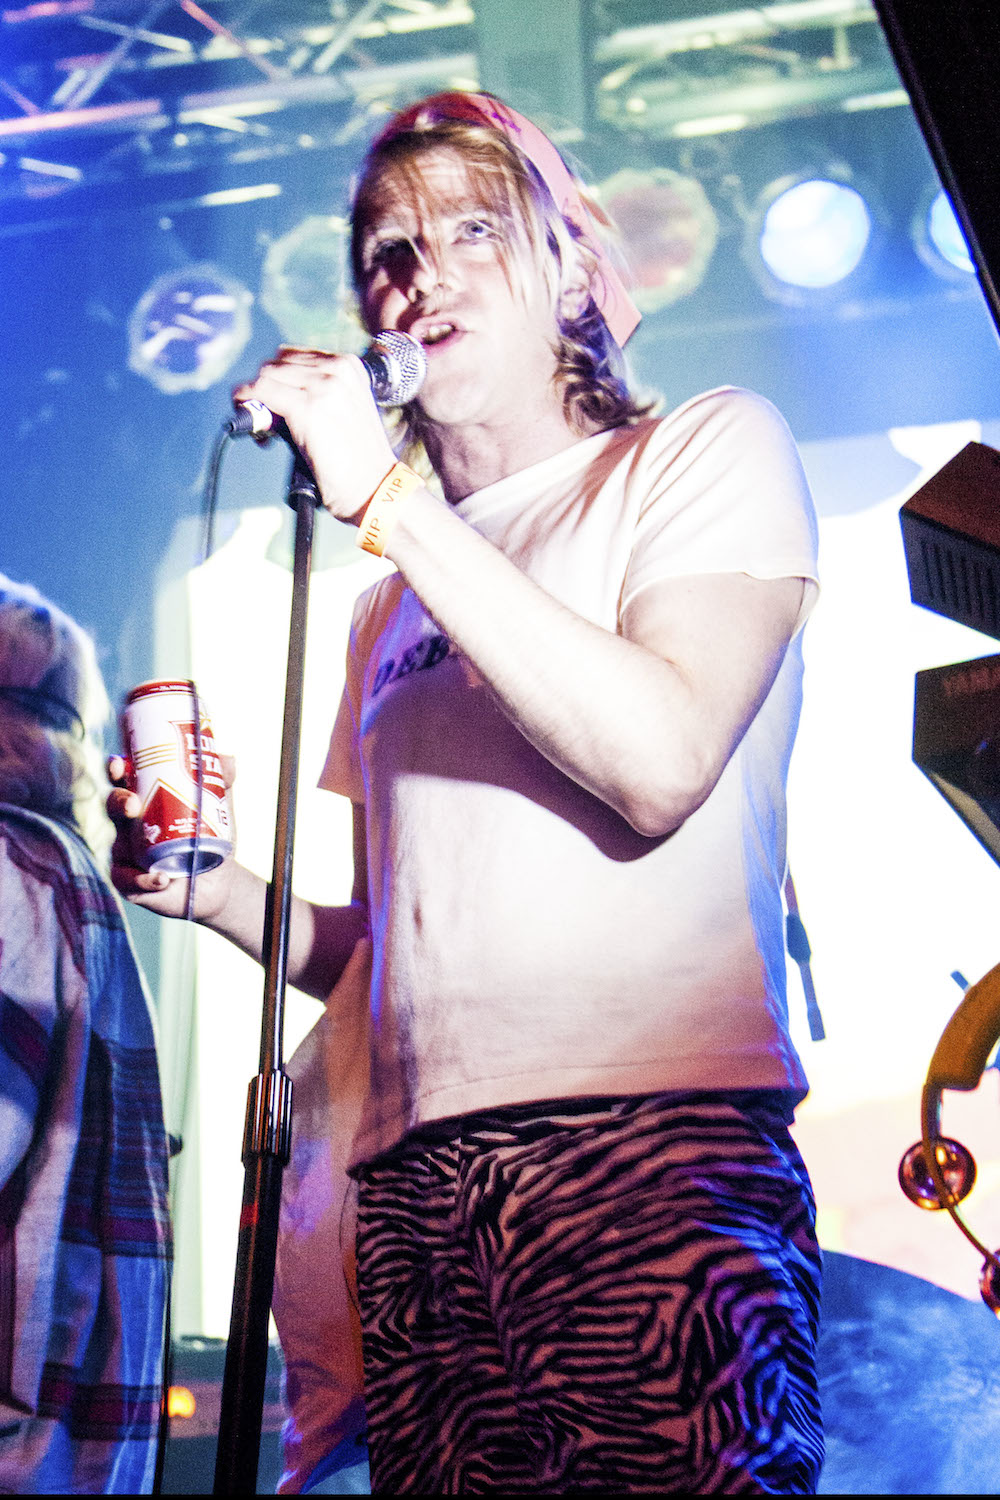 Ariel Pink Tour Jennifer Brandon Elliot7.jpg